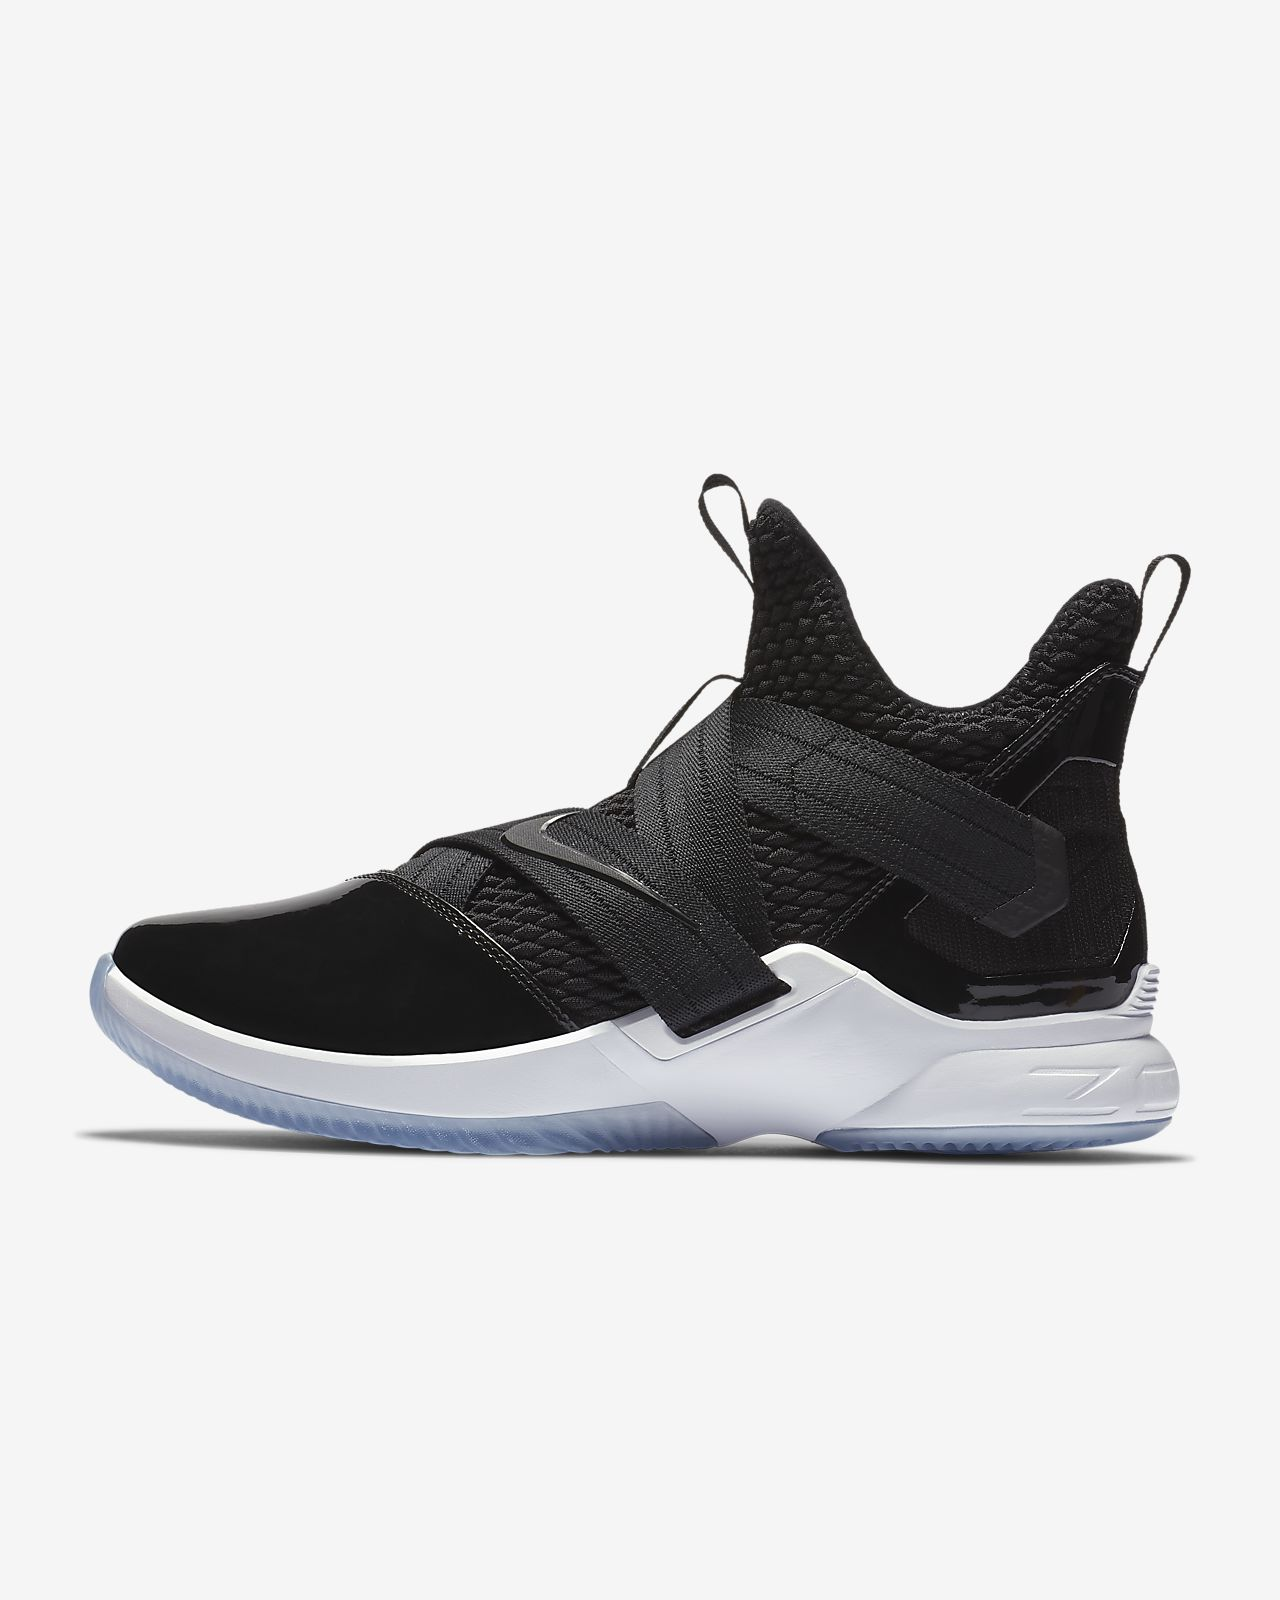 huge discount 9b376 0c946 LeBron Soldier 12 SFG